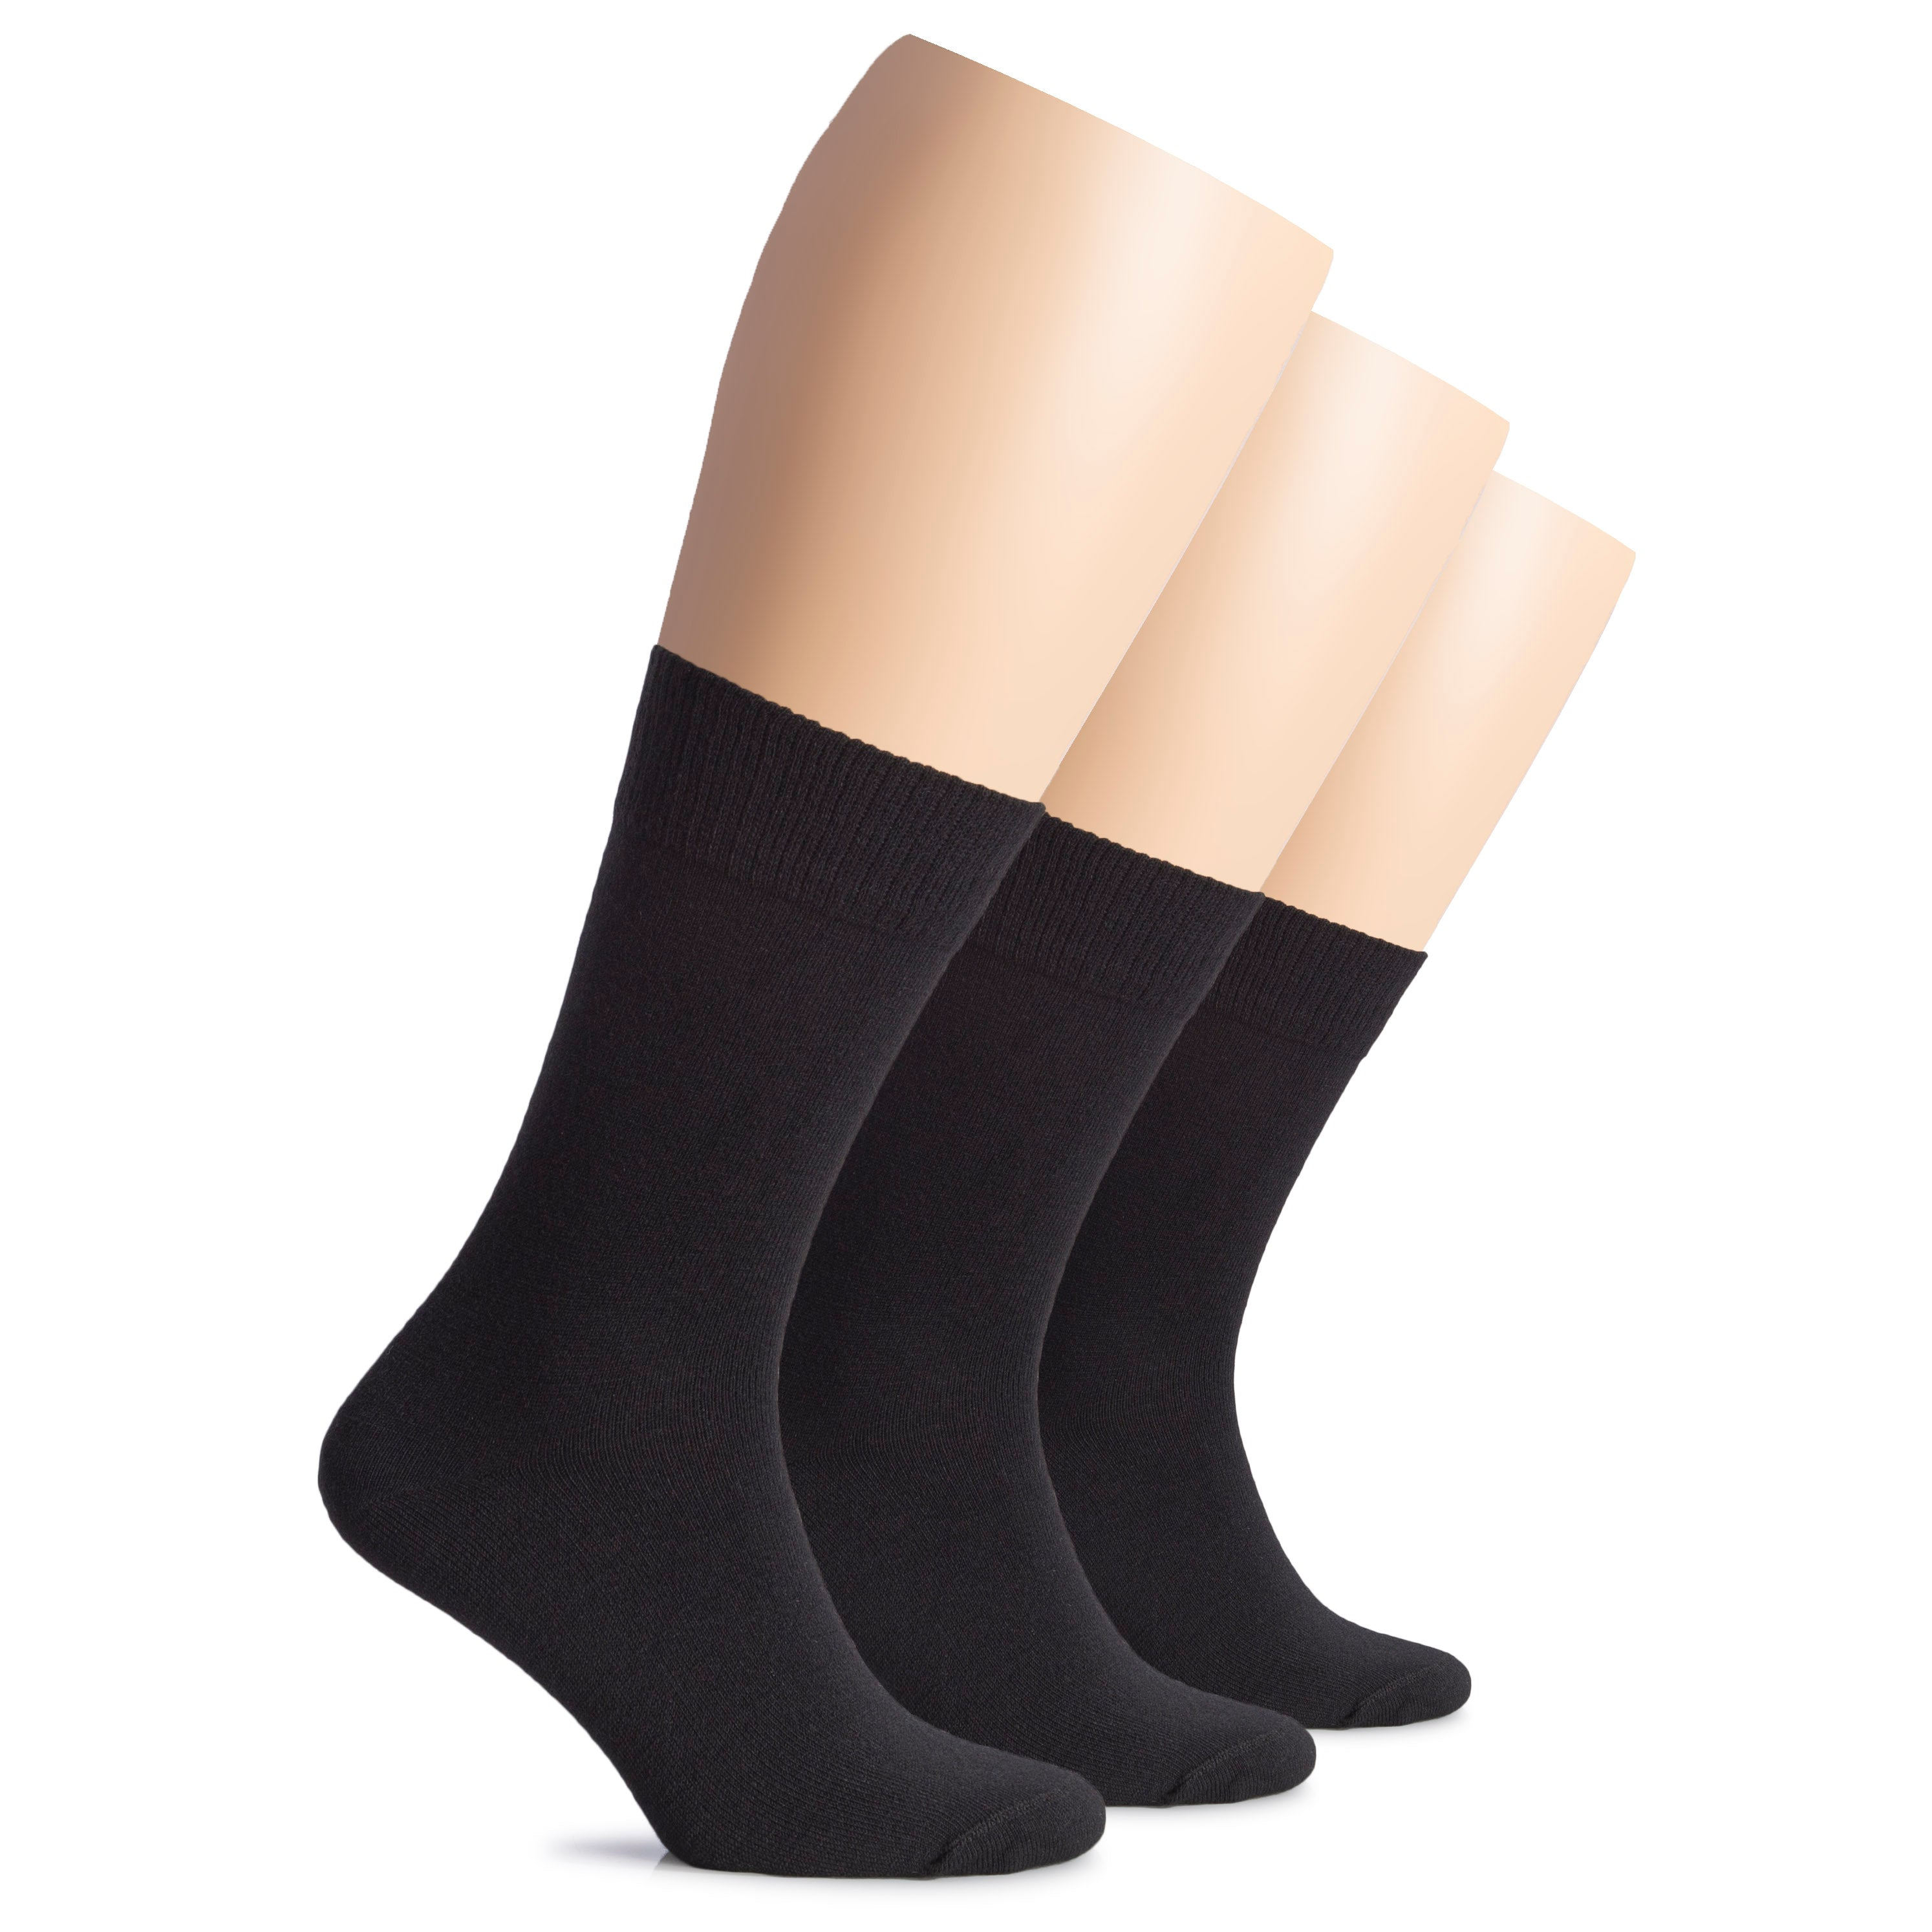 Hugh Ugoli Women's Wool Crew Socks, Warm, Soft, 3 Pairs